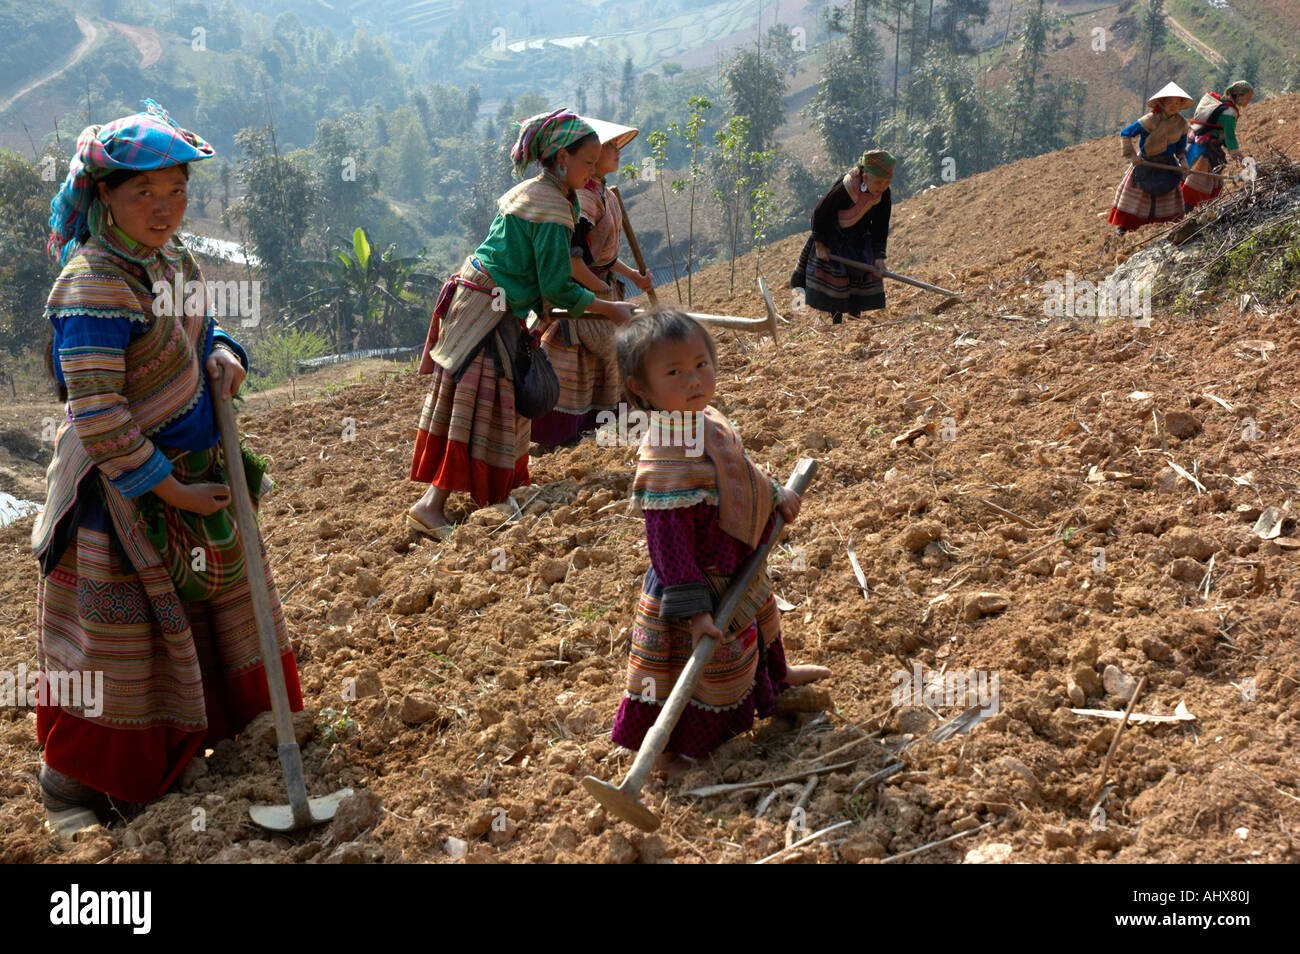 Women From The Flower Hmong Hill Trlbe Working in the Fields,  Bac Ha, near Sapa, Vietnam Stock Photo